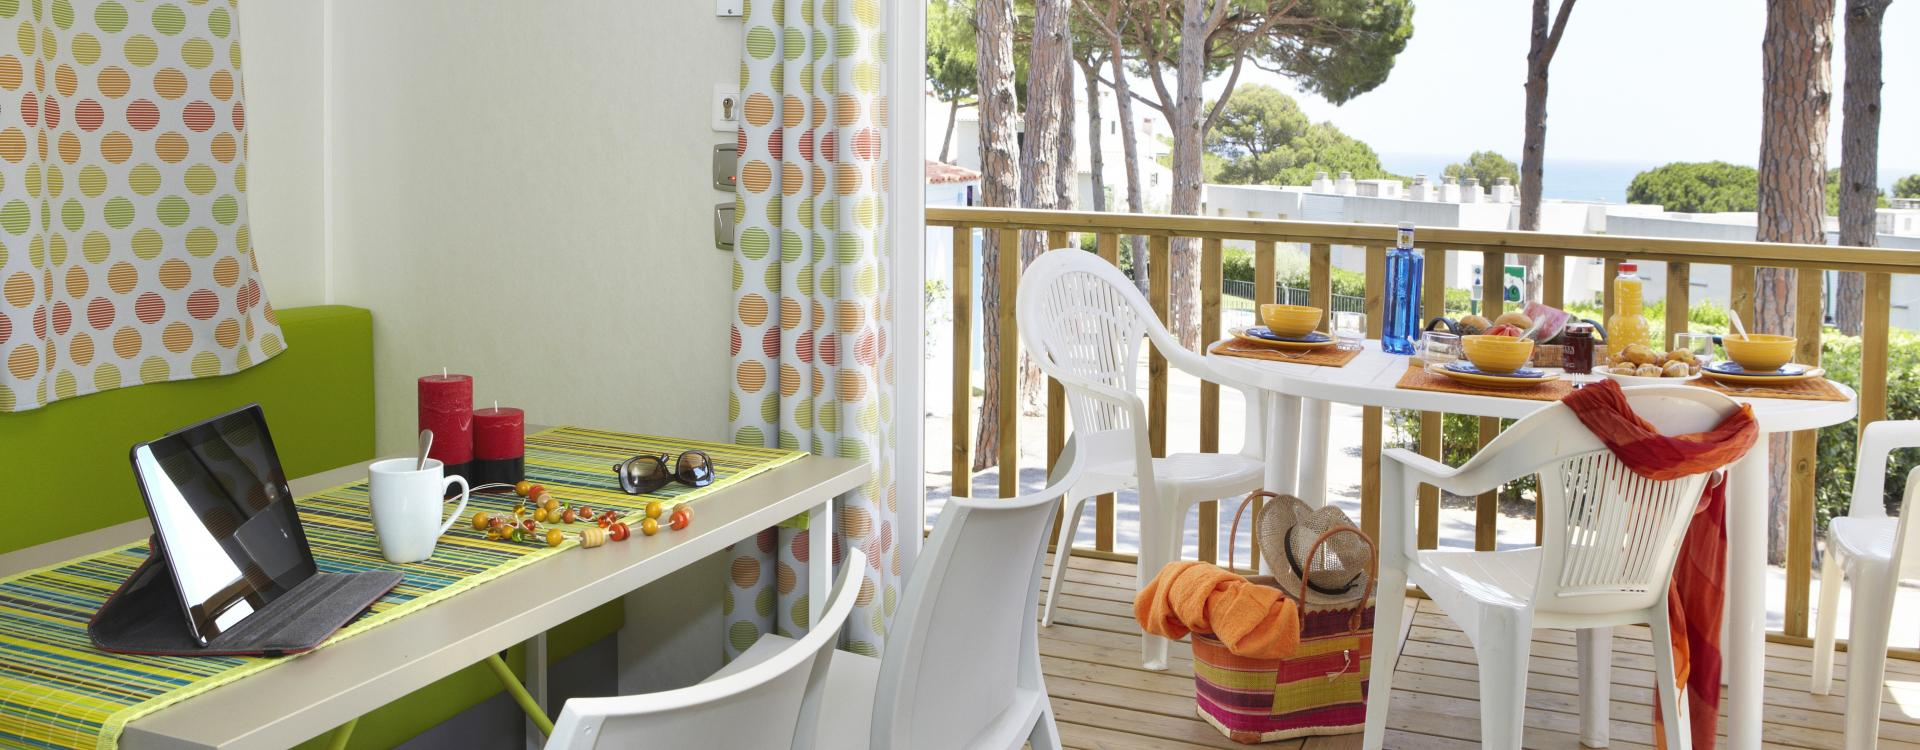 Bungalow Garbí of Camping & Bungalows Interpals in Spain